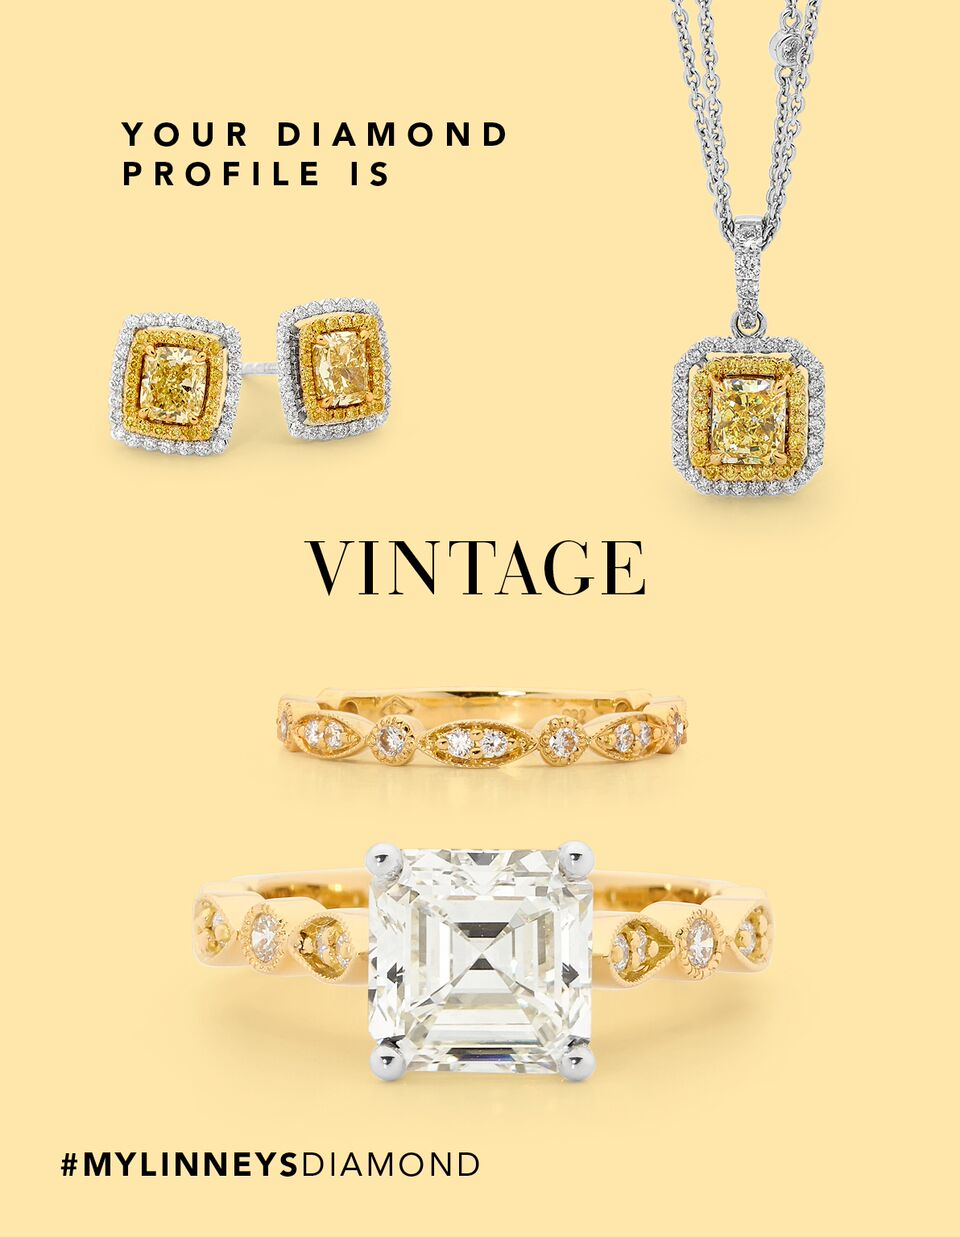 Your Diamond Profile is: Vintage